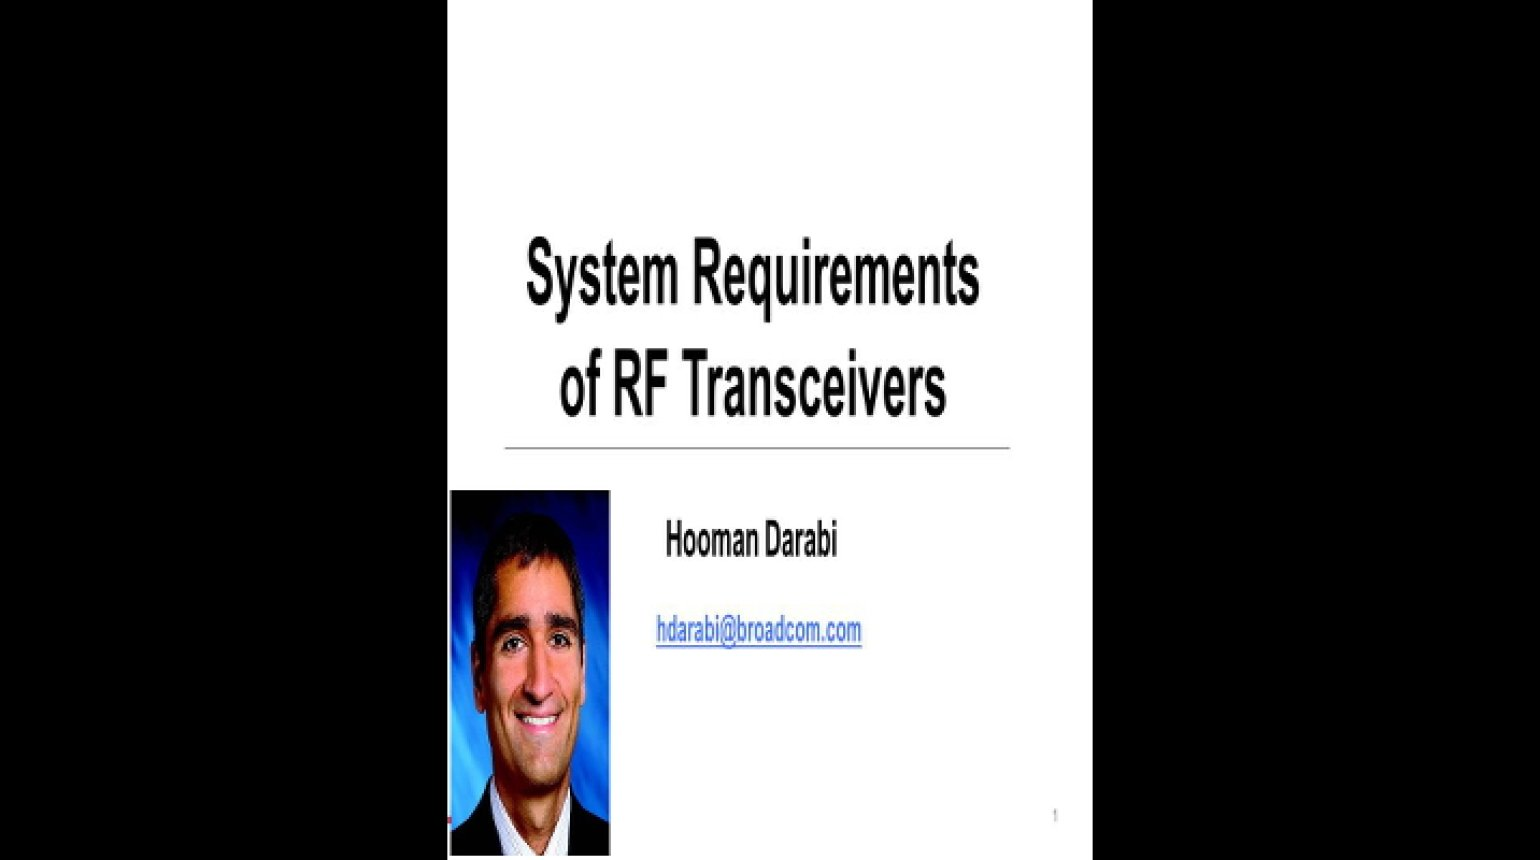 System Requirements of RF Transceivers Video